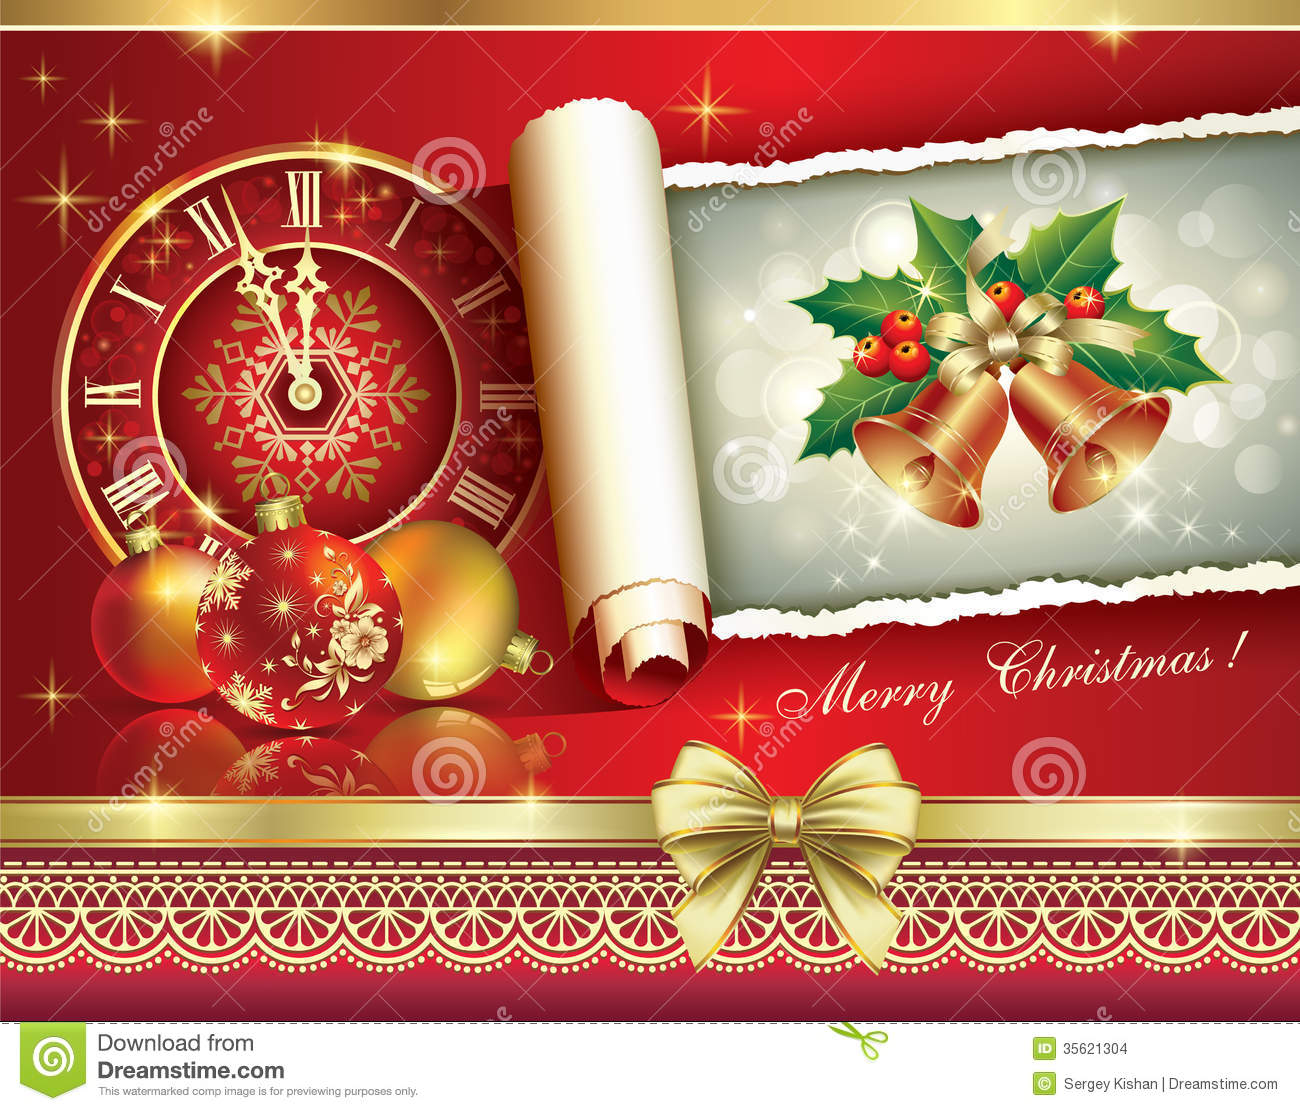 Christmas greeting card 2014 with a clock and ball stock vector christmas greeting card 2014 with a clock and ball m4hsunfo